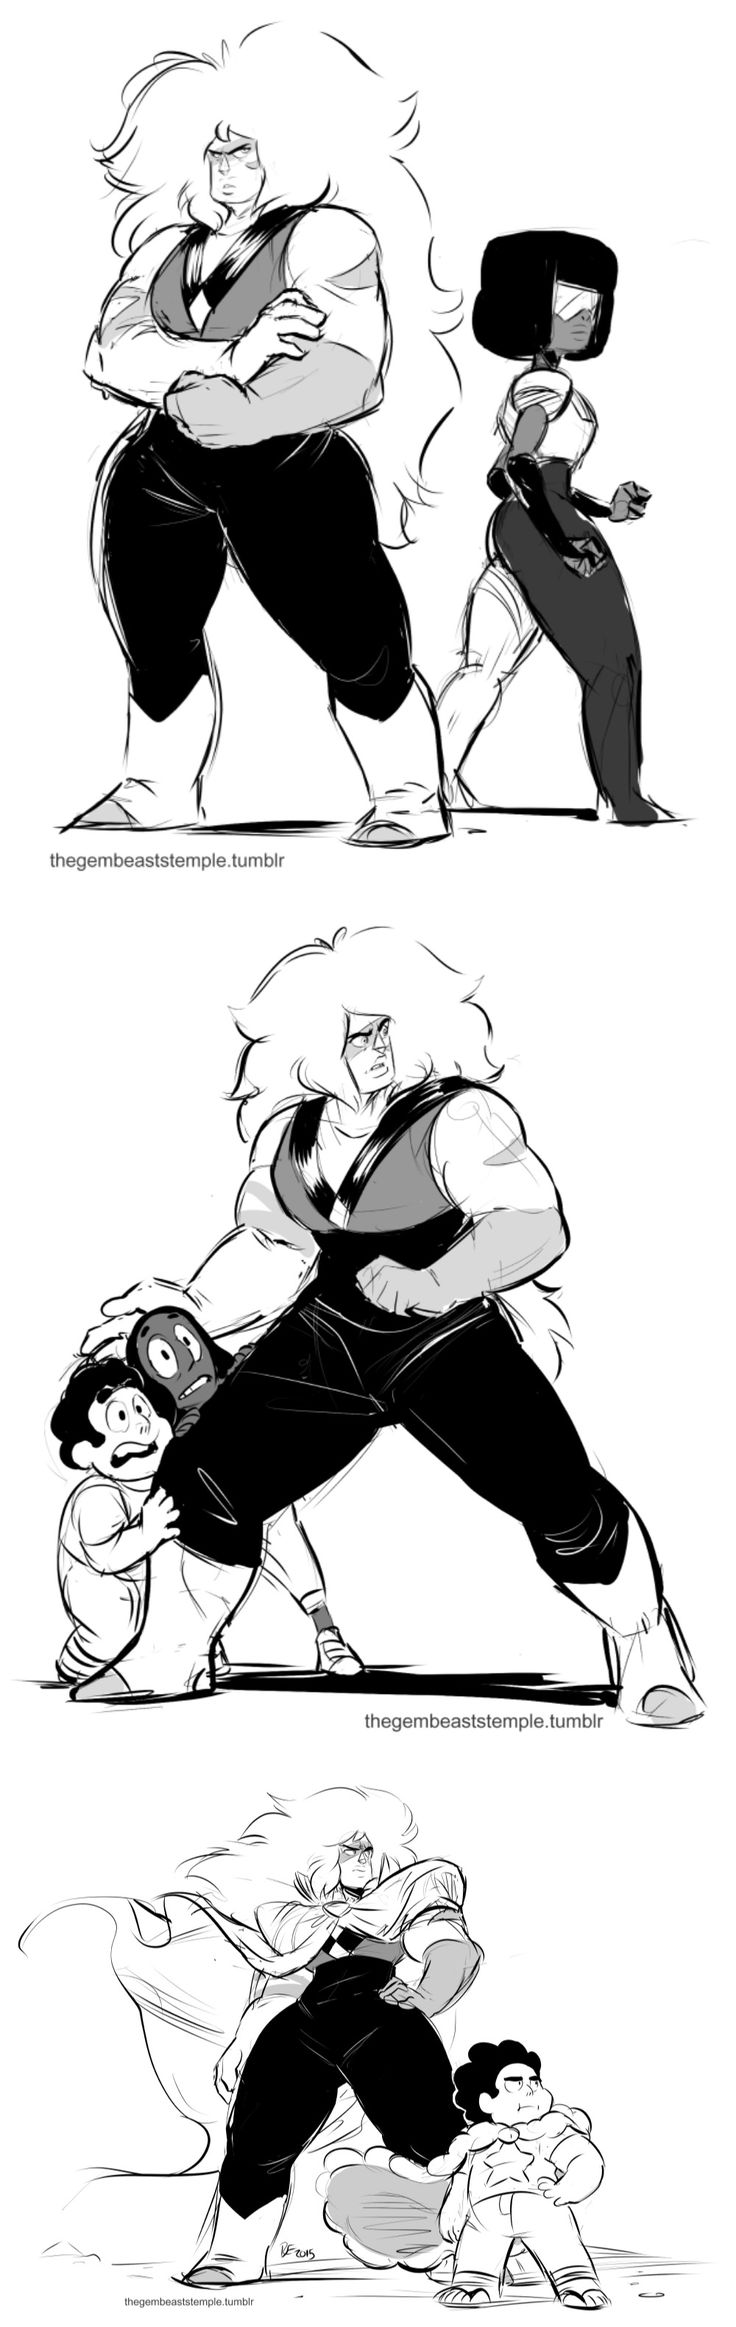 Jasper becoming Big Buff Cheeto Puff Mom would be the best thing ever!!!!!